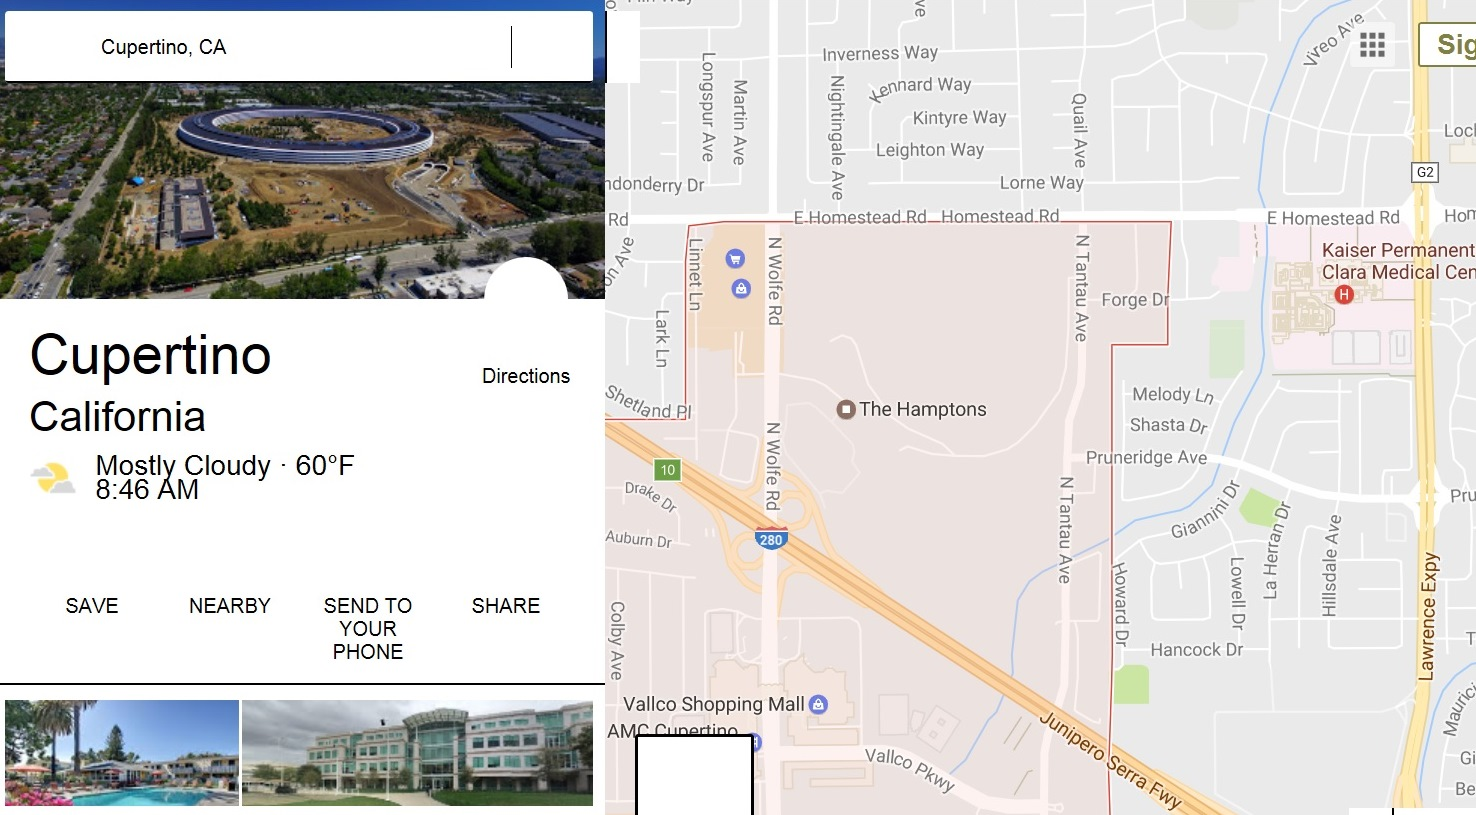 Apple's new headquarters on old Cupertino HP site is shown by Google Maps